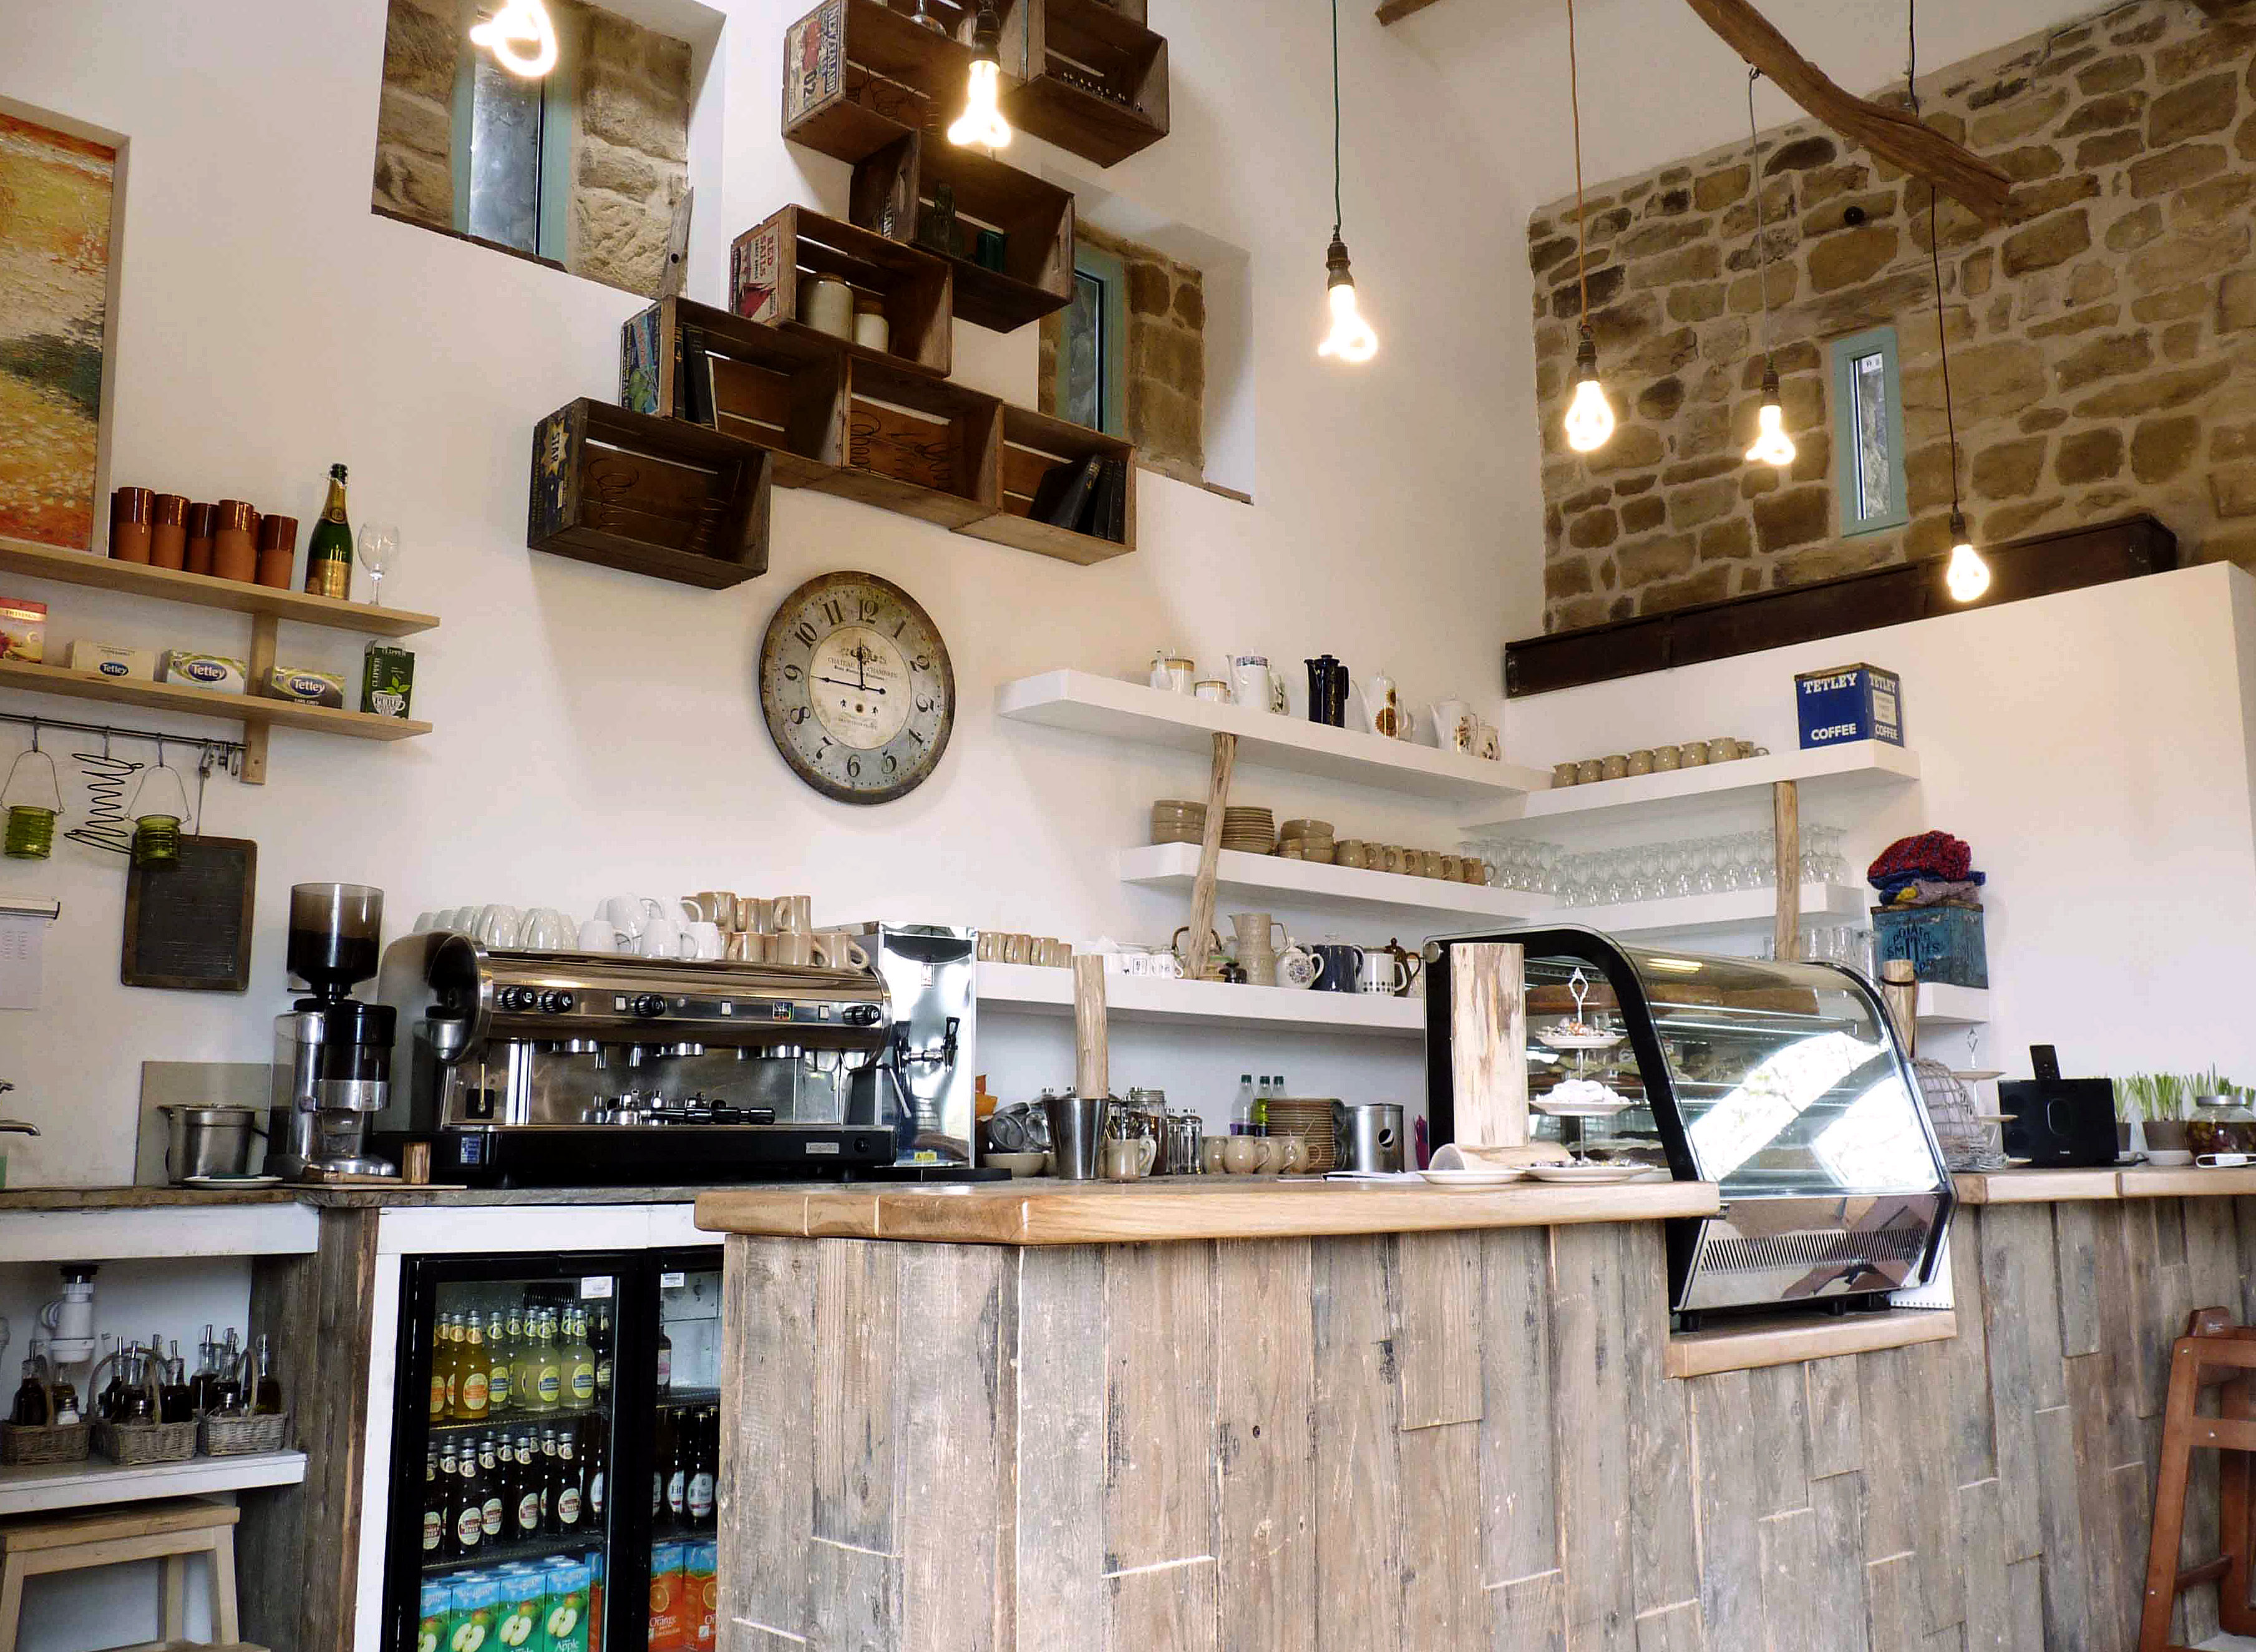 1000+ images about cafe design on Pinterest | Cafe counter ...